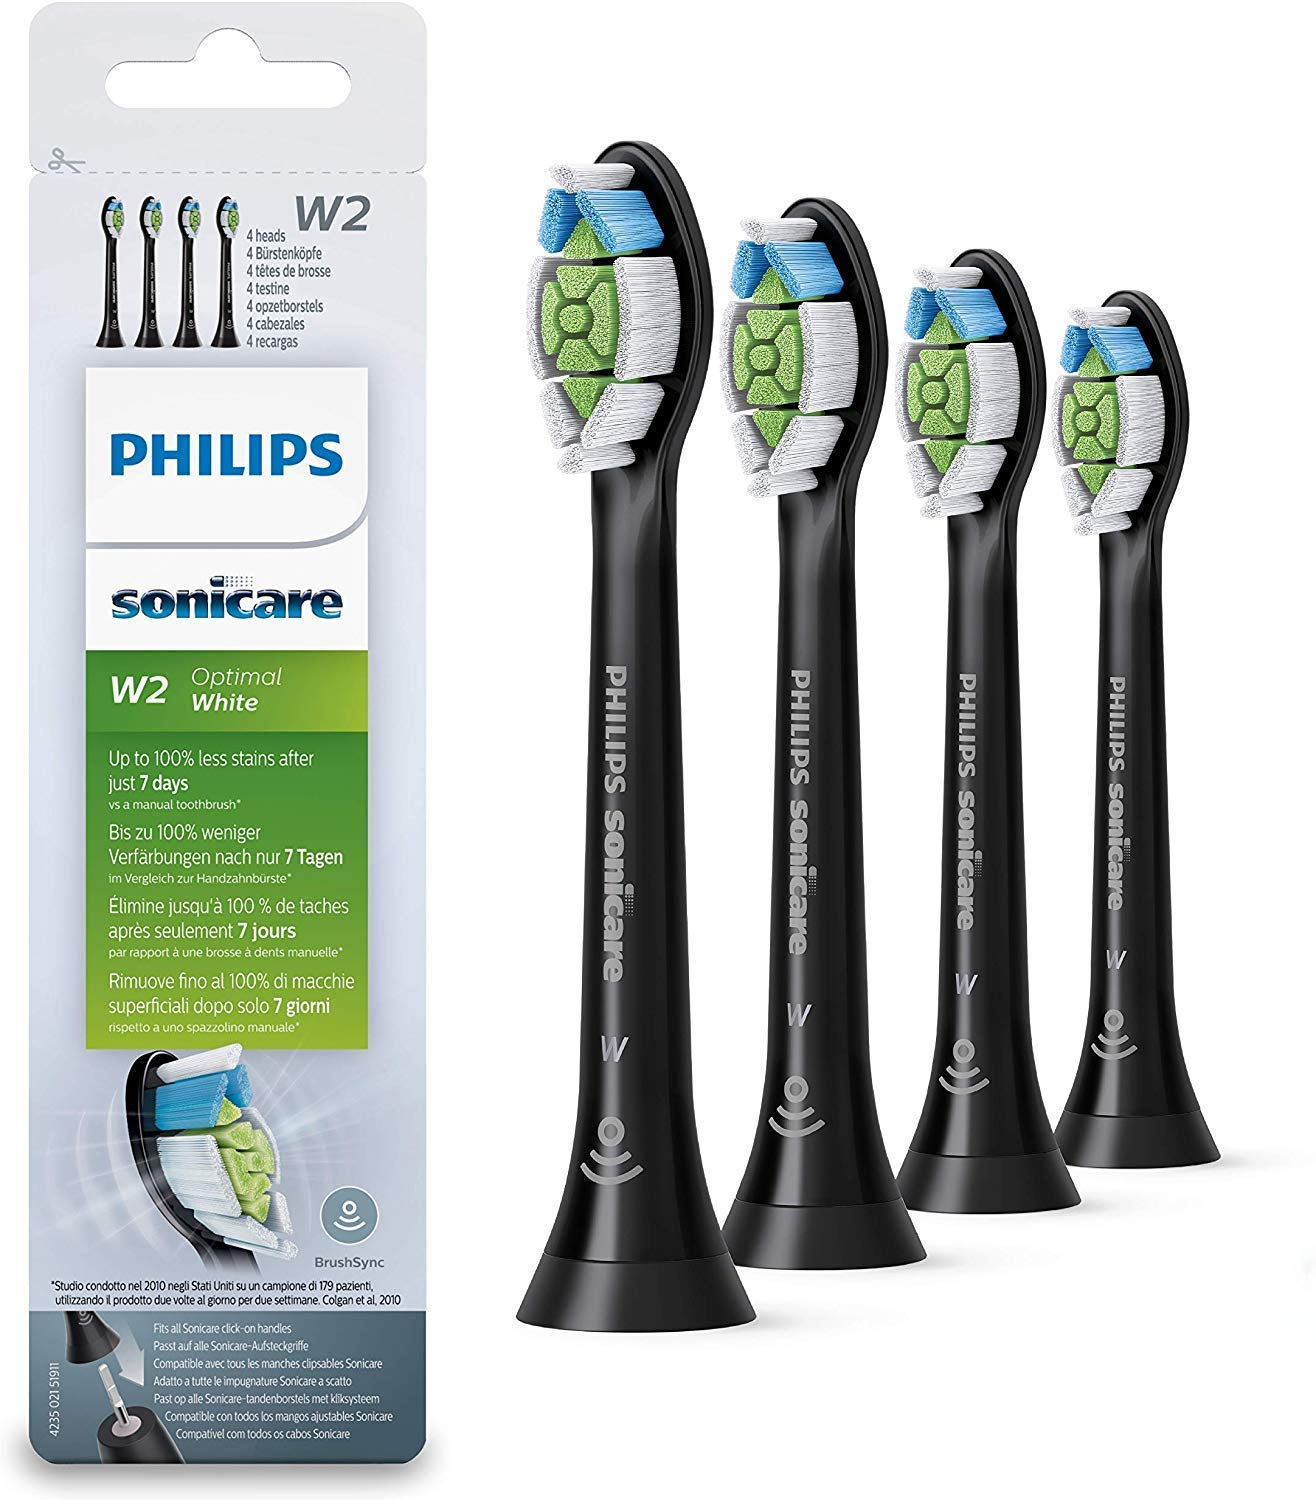 Pack 4 cabezales Optimal White para cepillos Sonicare